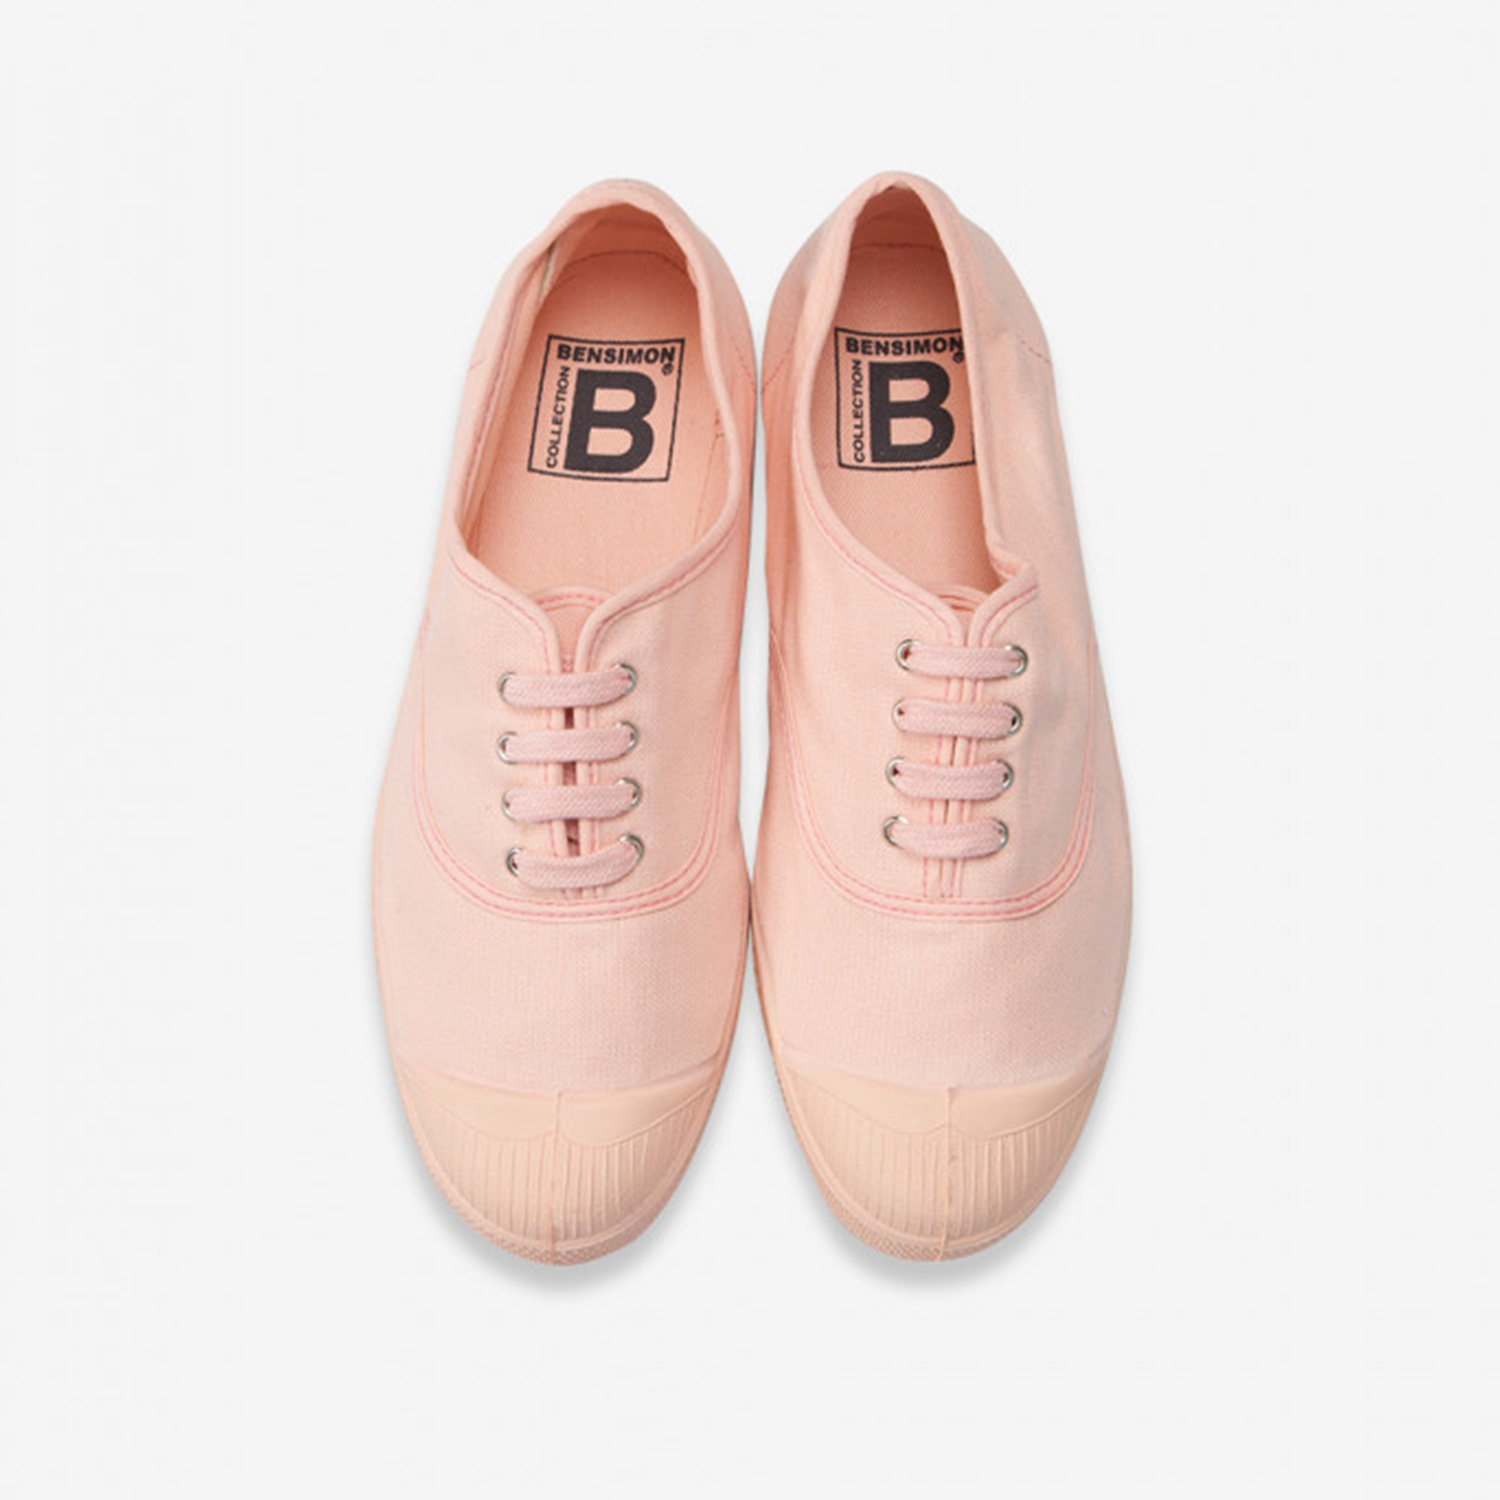 Ben Simon- Tennis shoe- Pink coloursole